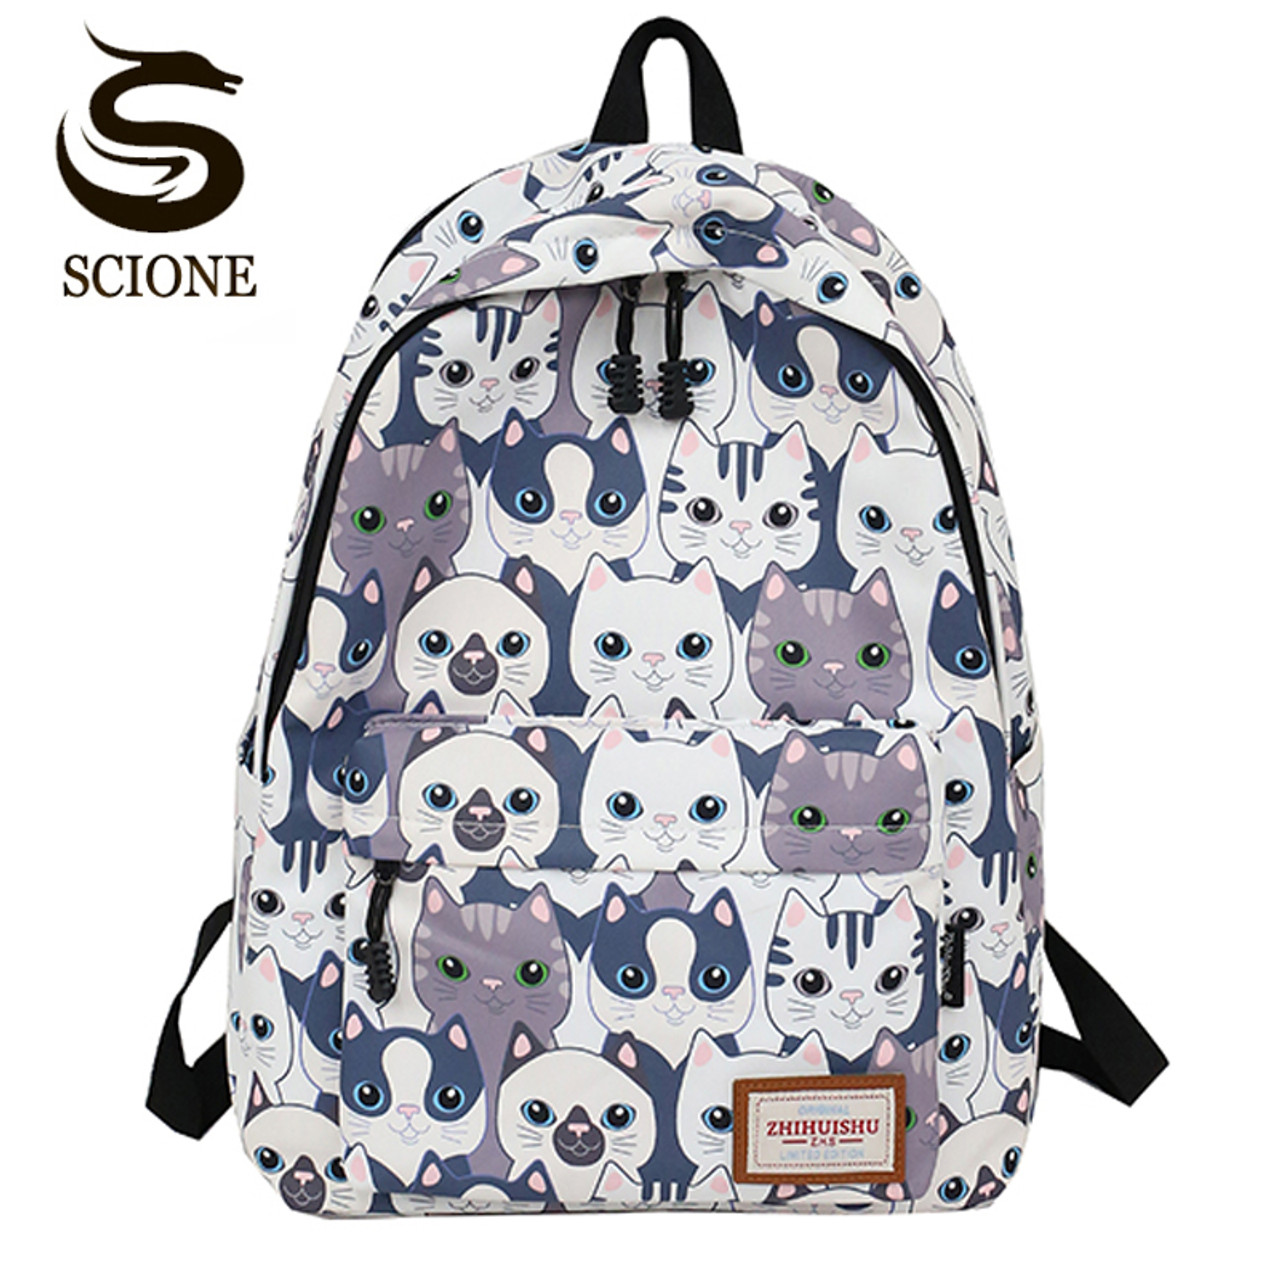 deb749a85809 ... Fashion animal Printing Backpack Women School Students Back Pack Female  14-15.6 Inch Laptop Cute ...